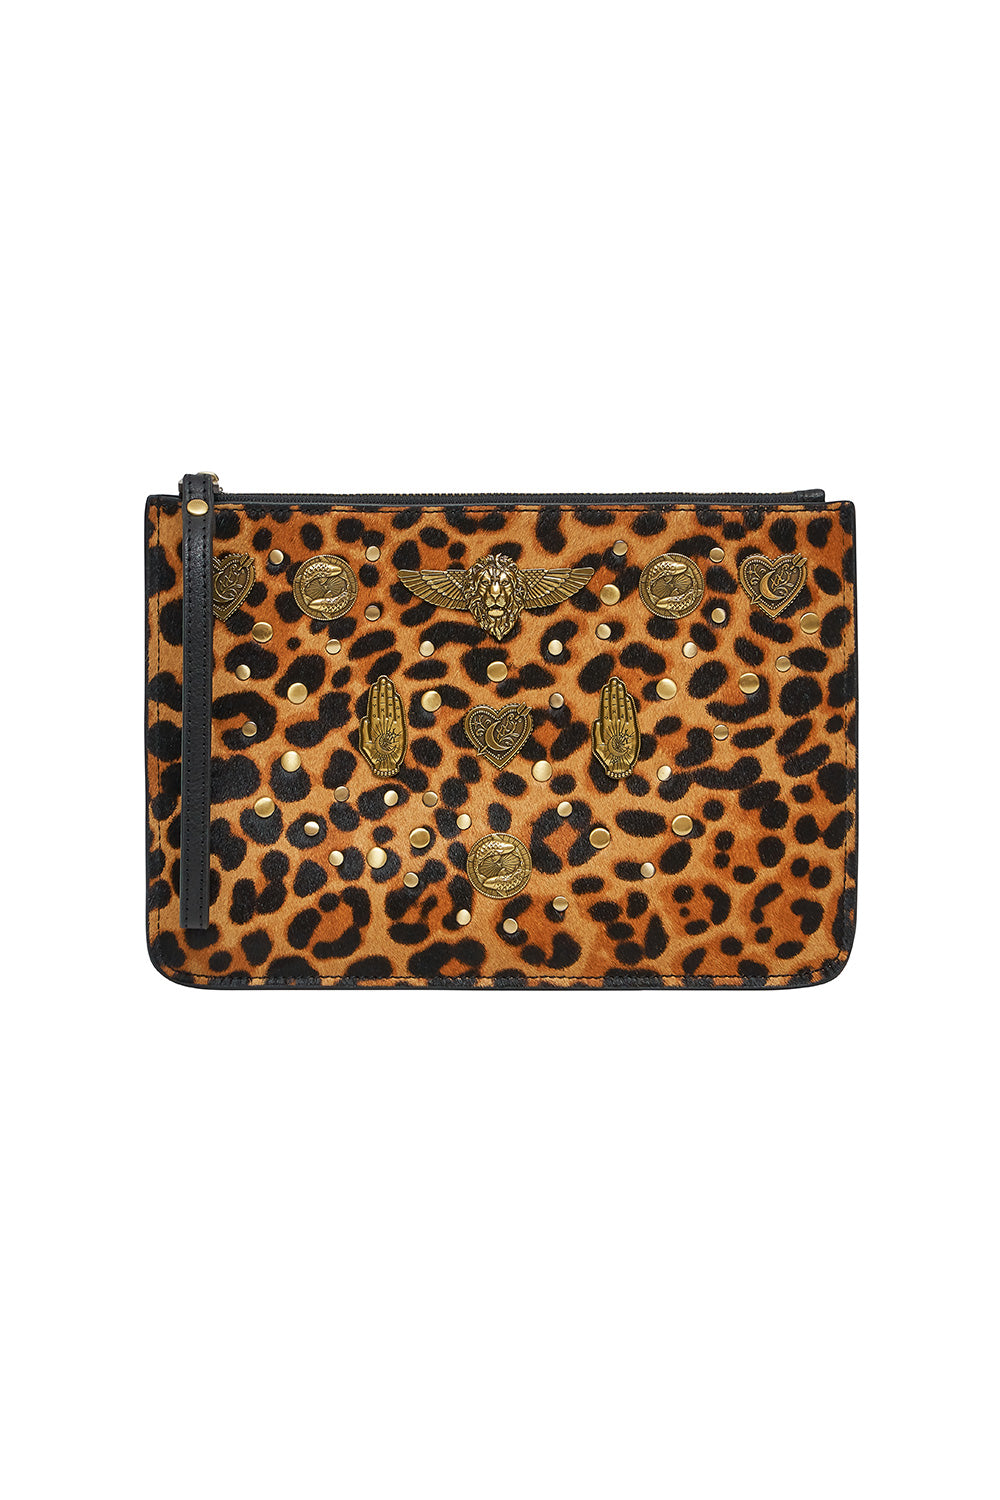 STUDDED LEATHER CLUTCH FIRE AT NIGHT